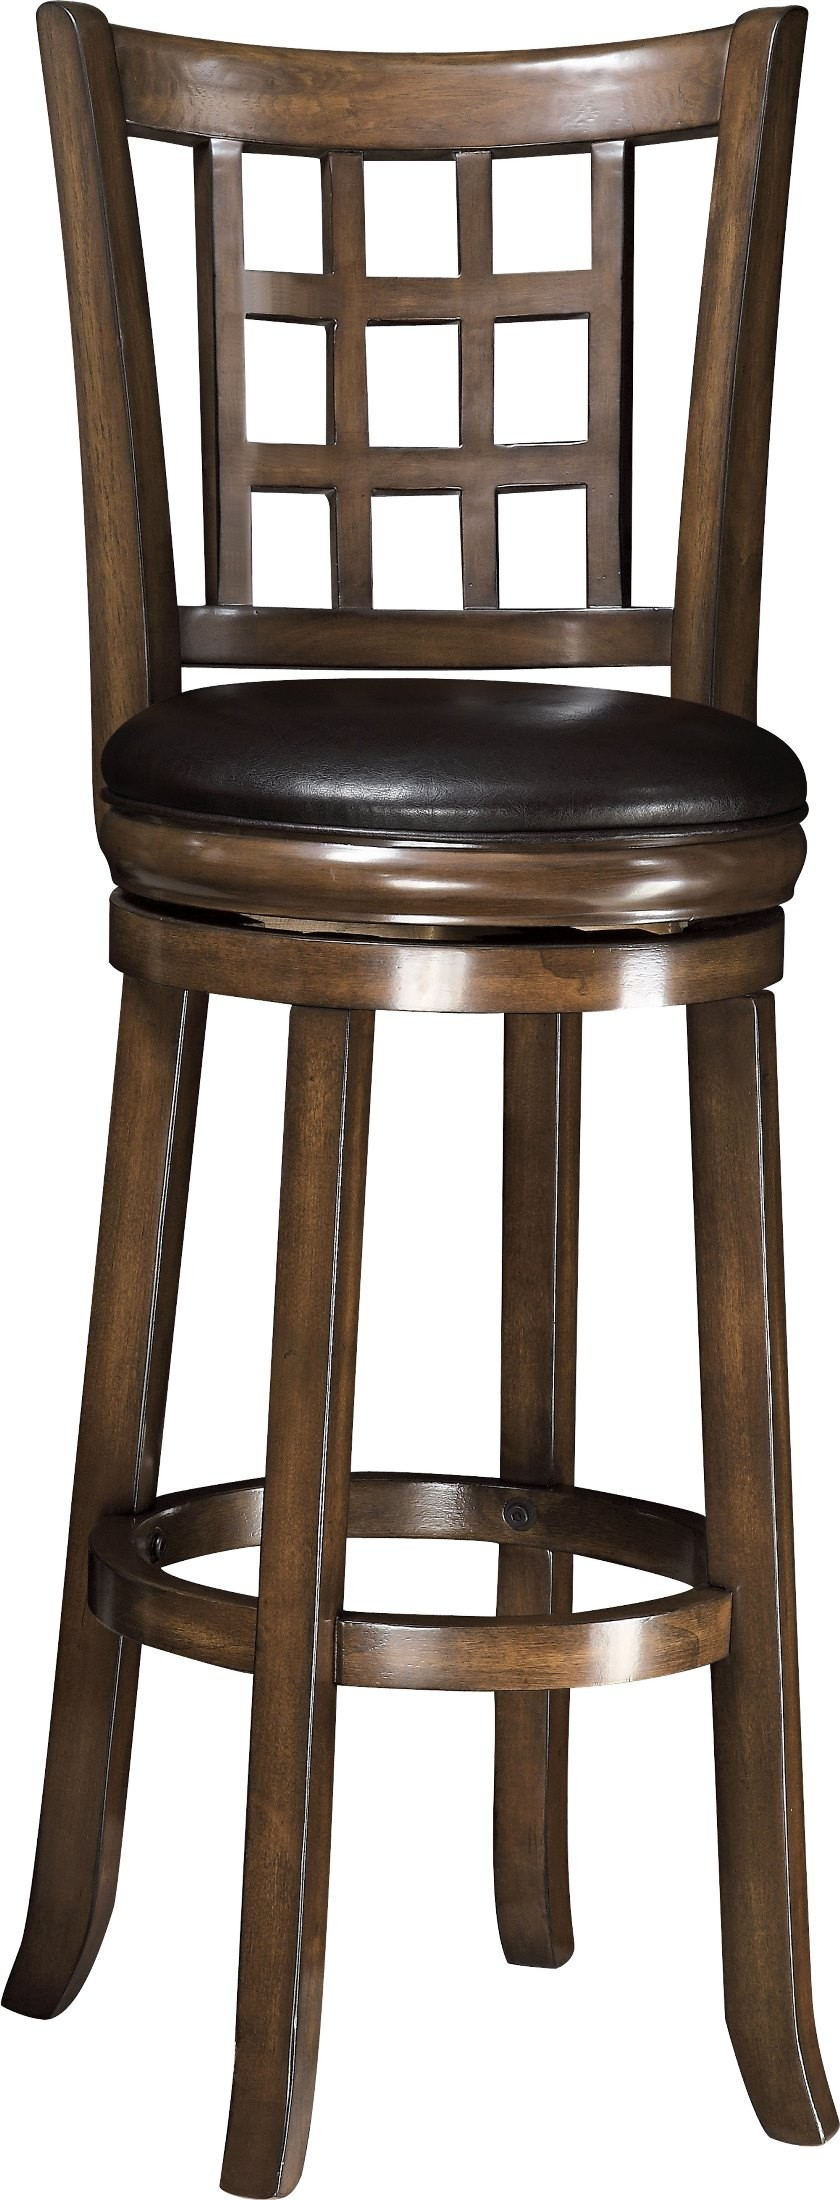 102640 Oak 29 Quot H Swivel Bar Stool From Coaster 102640